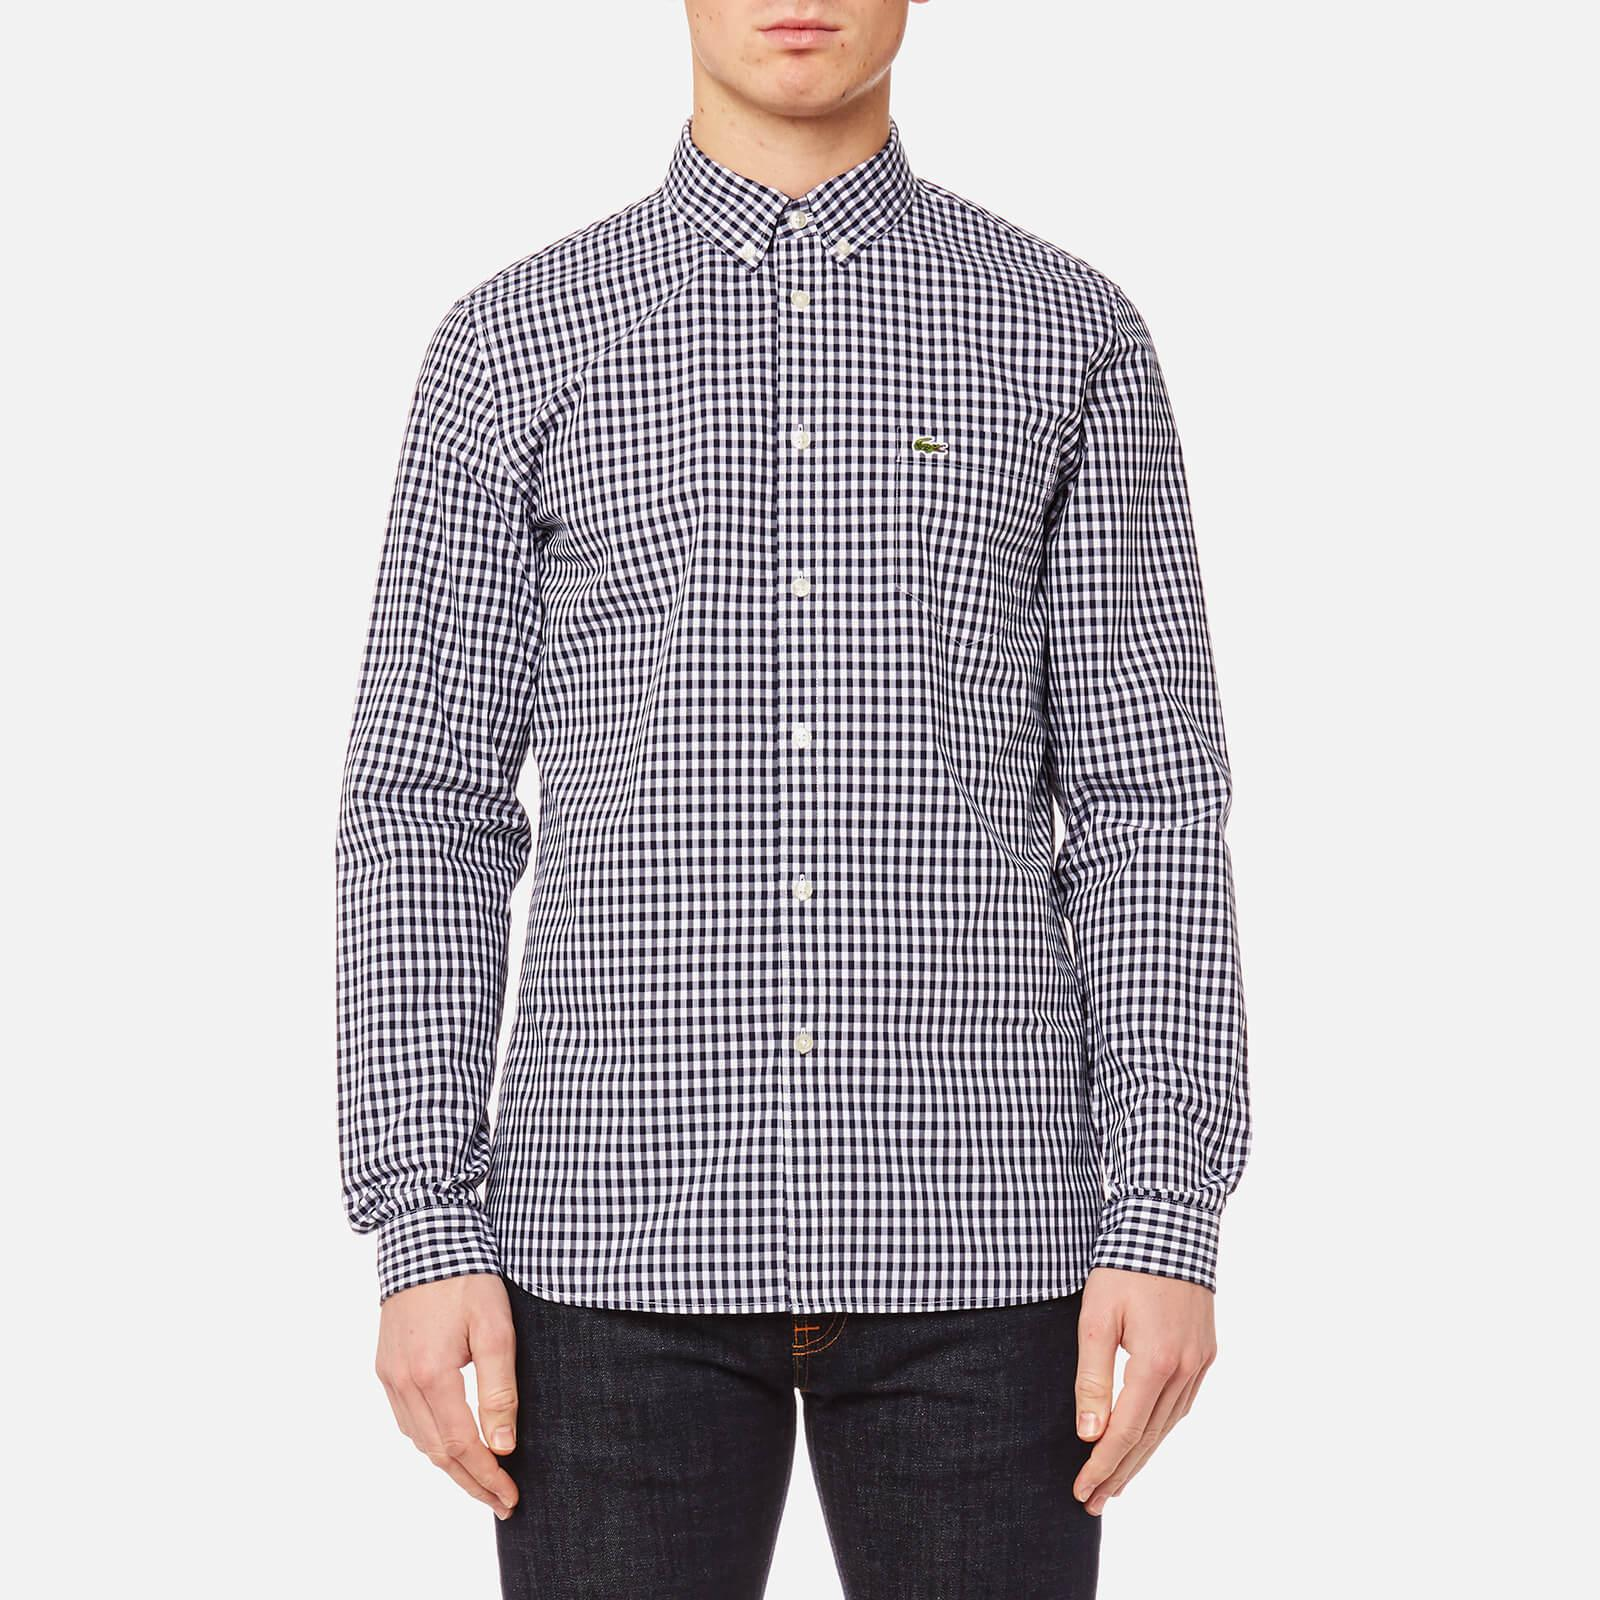 Free shipping BOTH ways on roper karman long sleeve shirt blue plaid, from our vast selection of styles. Fast delivery, and 24/7/ real-person service with a smile. Click or call